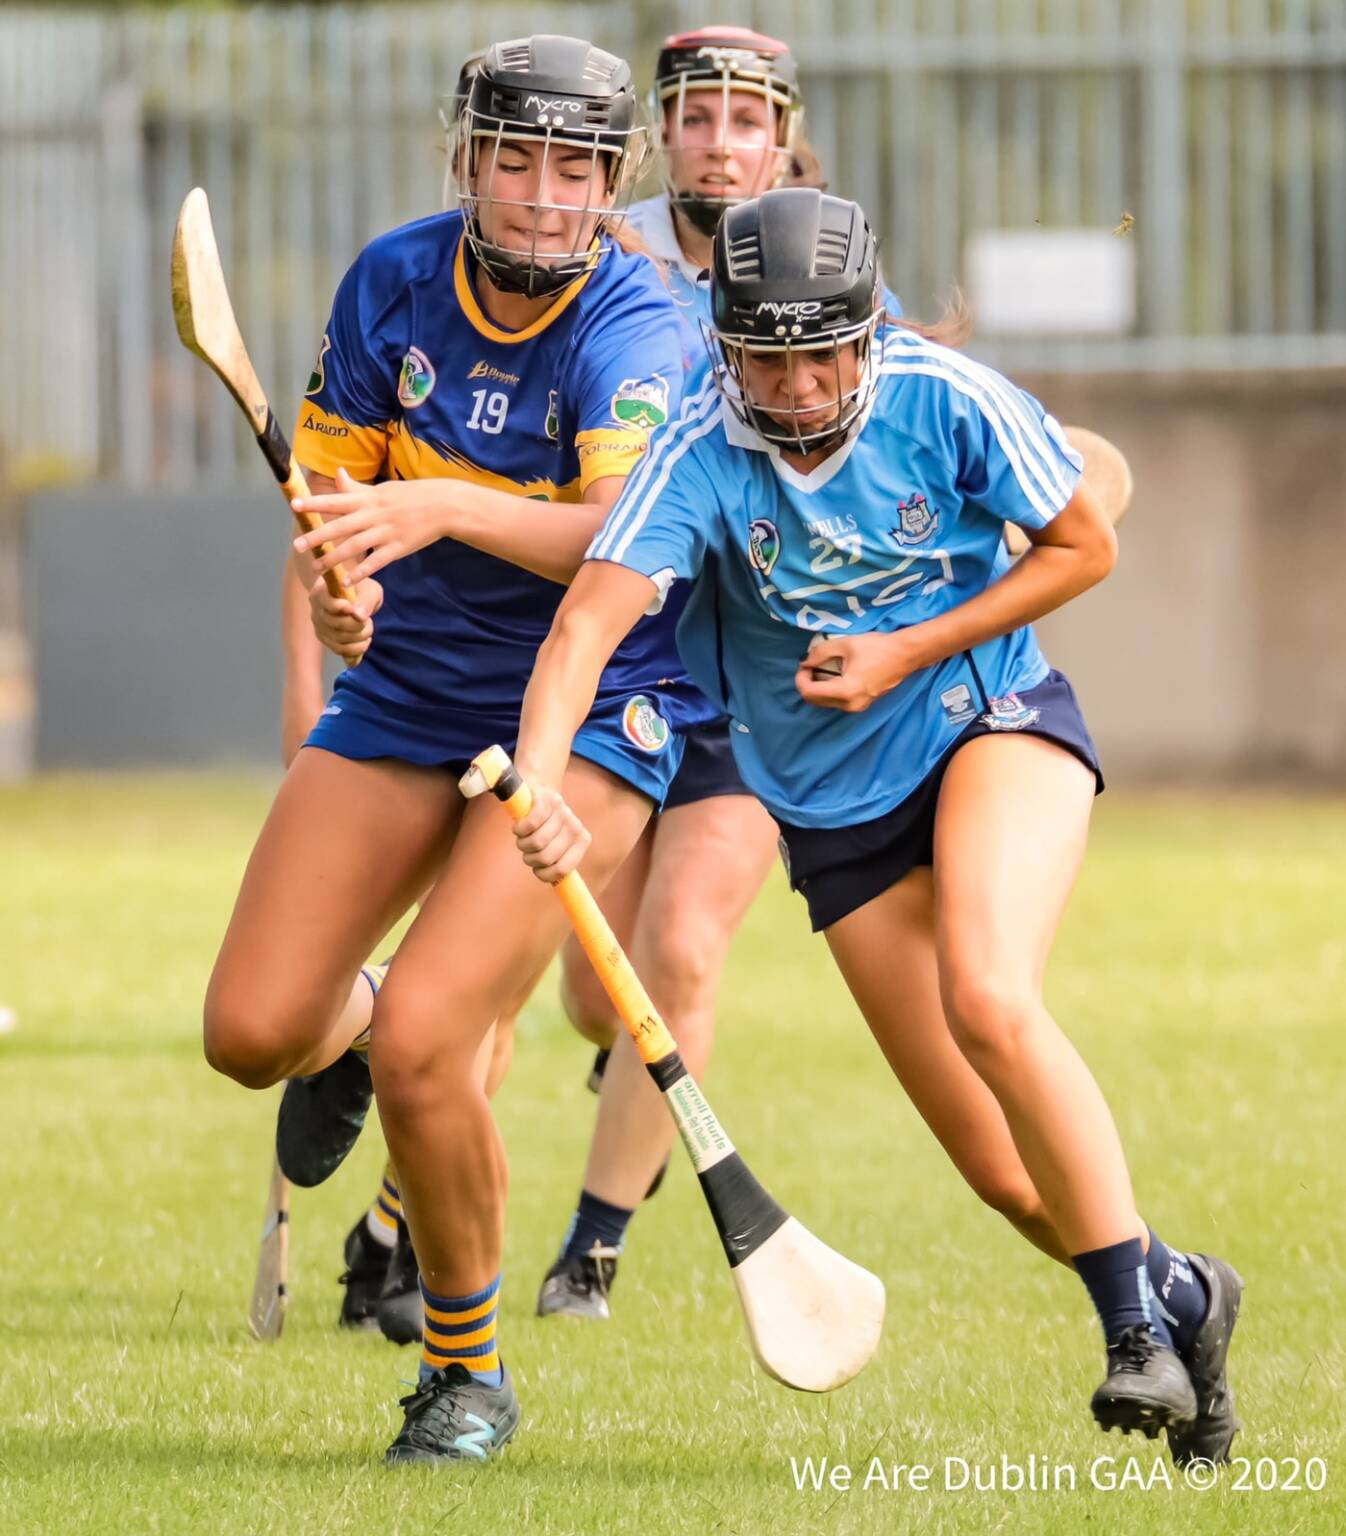 A Dublin and Tipperary Camogie player battling for the ball, the Dublin Senior Camogie team has been named for the meeting between the two teams in this year's championship